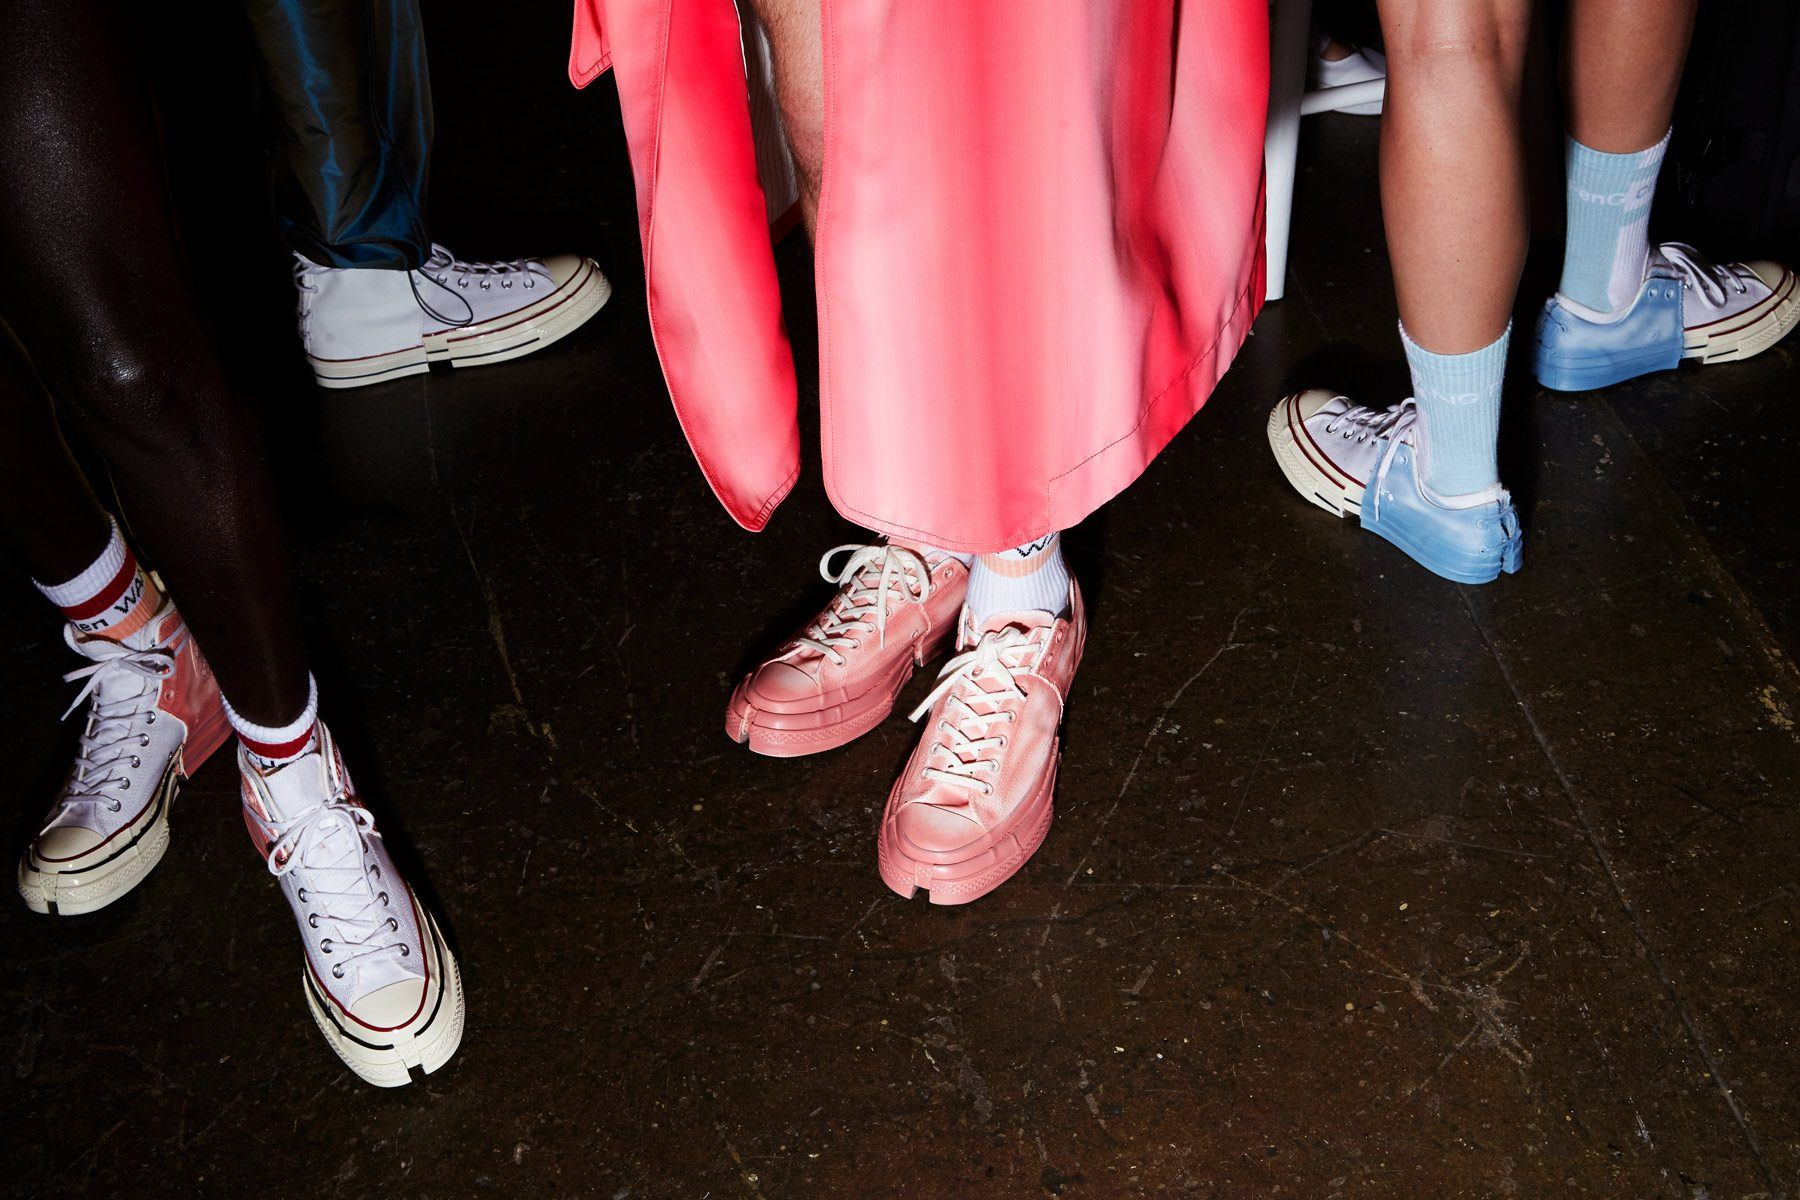 Customized Converse Chuck Taylor's backstage at designer Feng Chen Wang for Spring 2019. Photographed by Alexander Thompson for Ponyboy magazine.